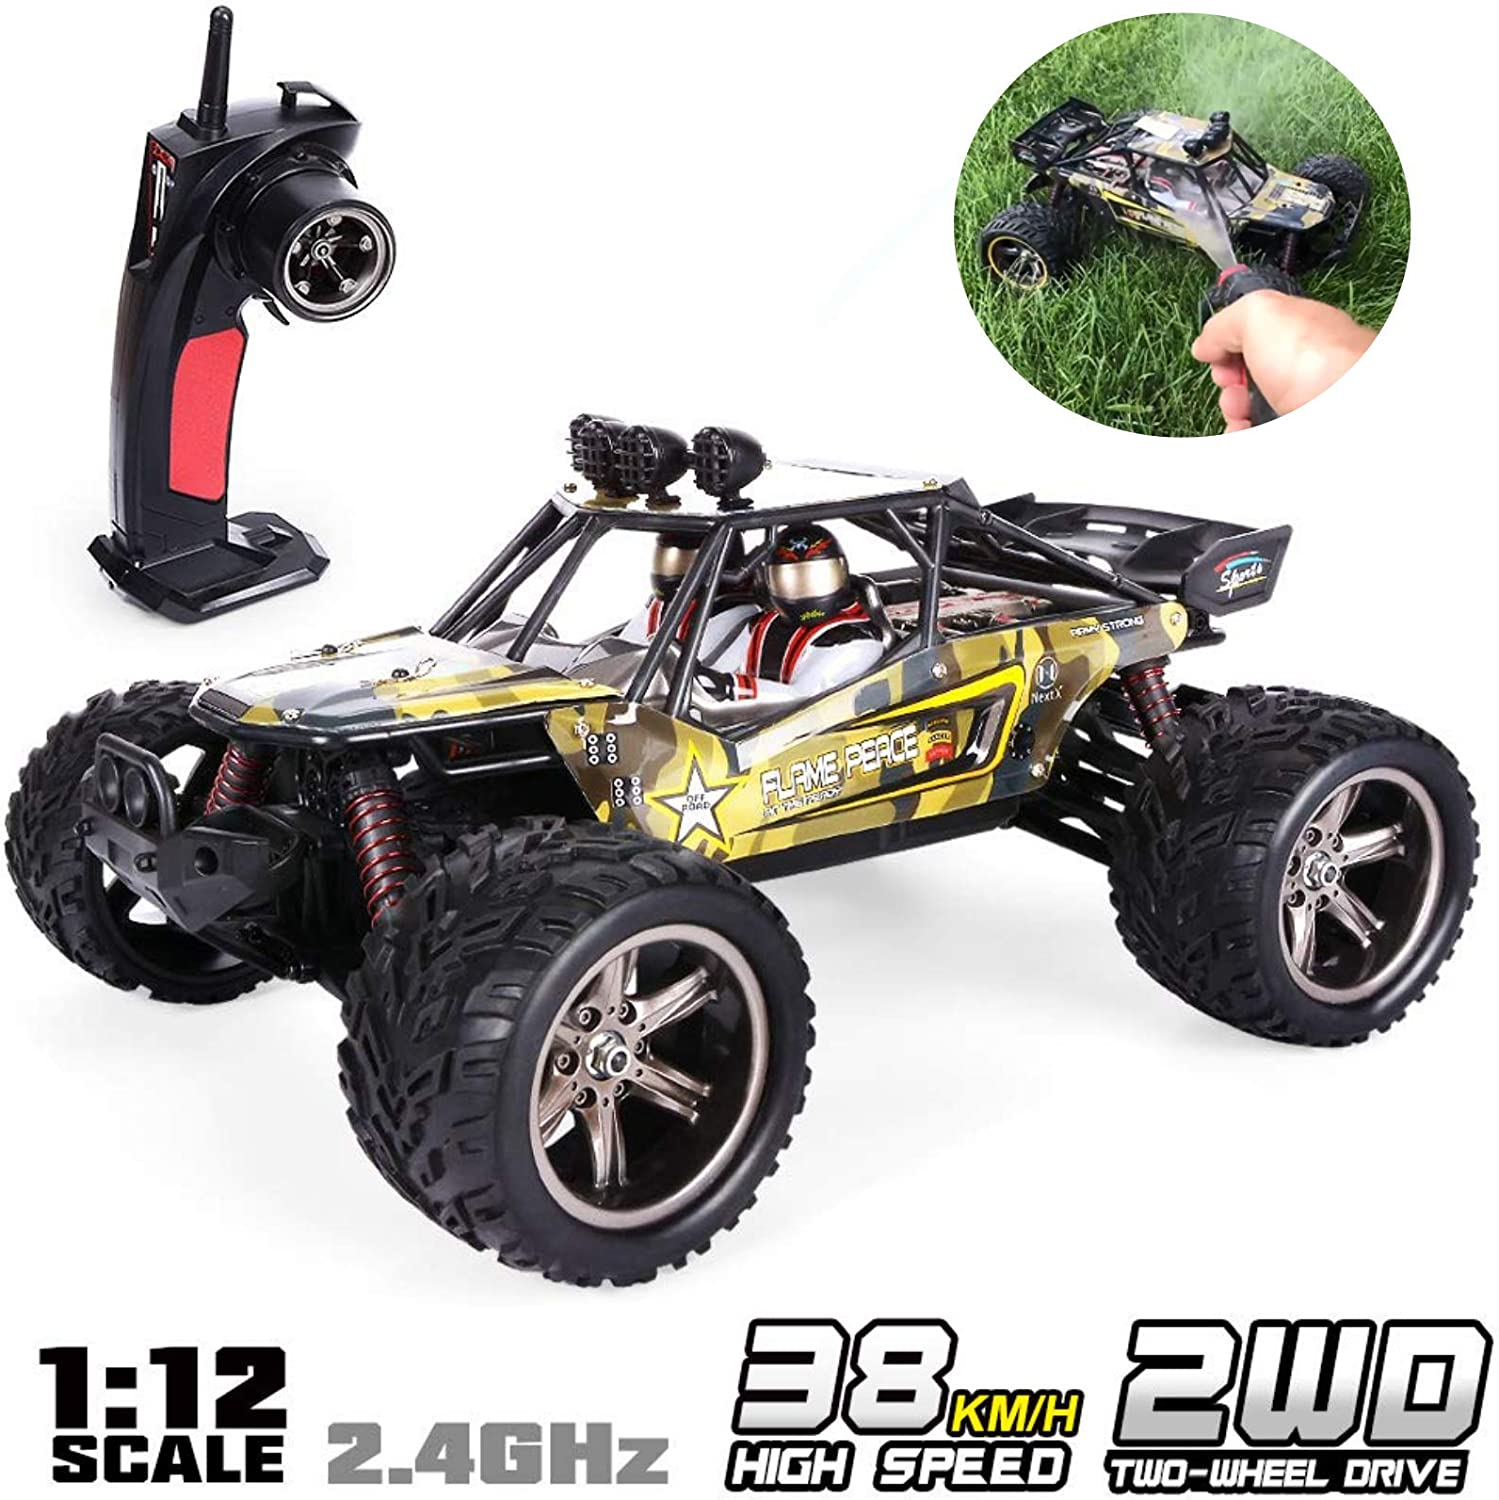 GPTOYS 1 12 Remote Control Off Road Truck Hobby Grade Army Green Monster Crawler S916